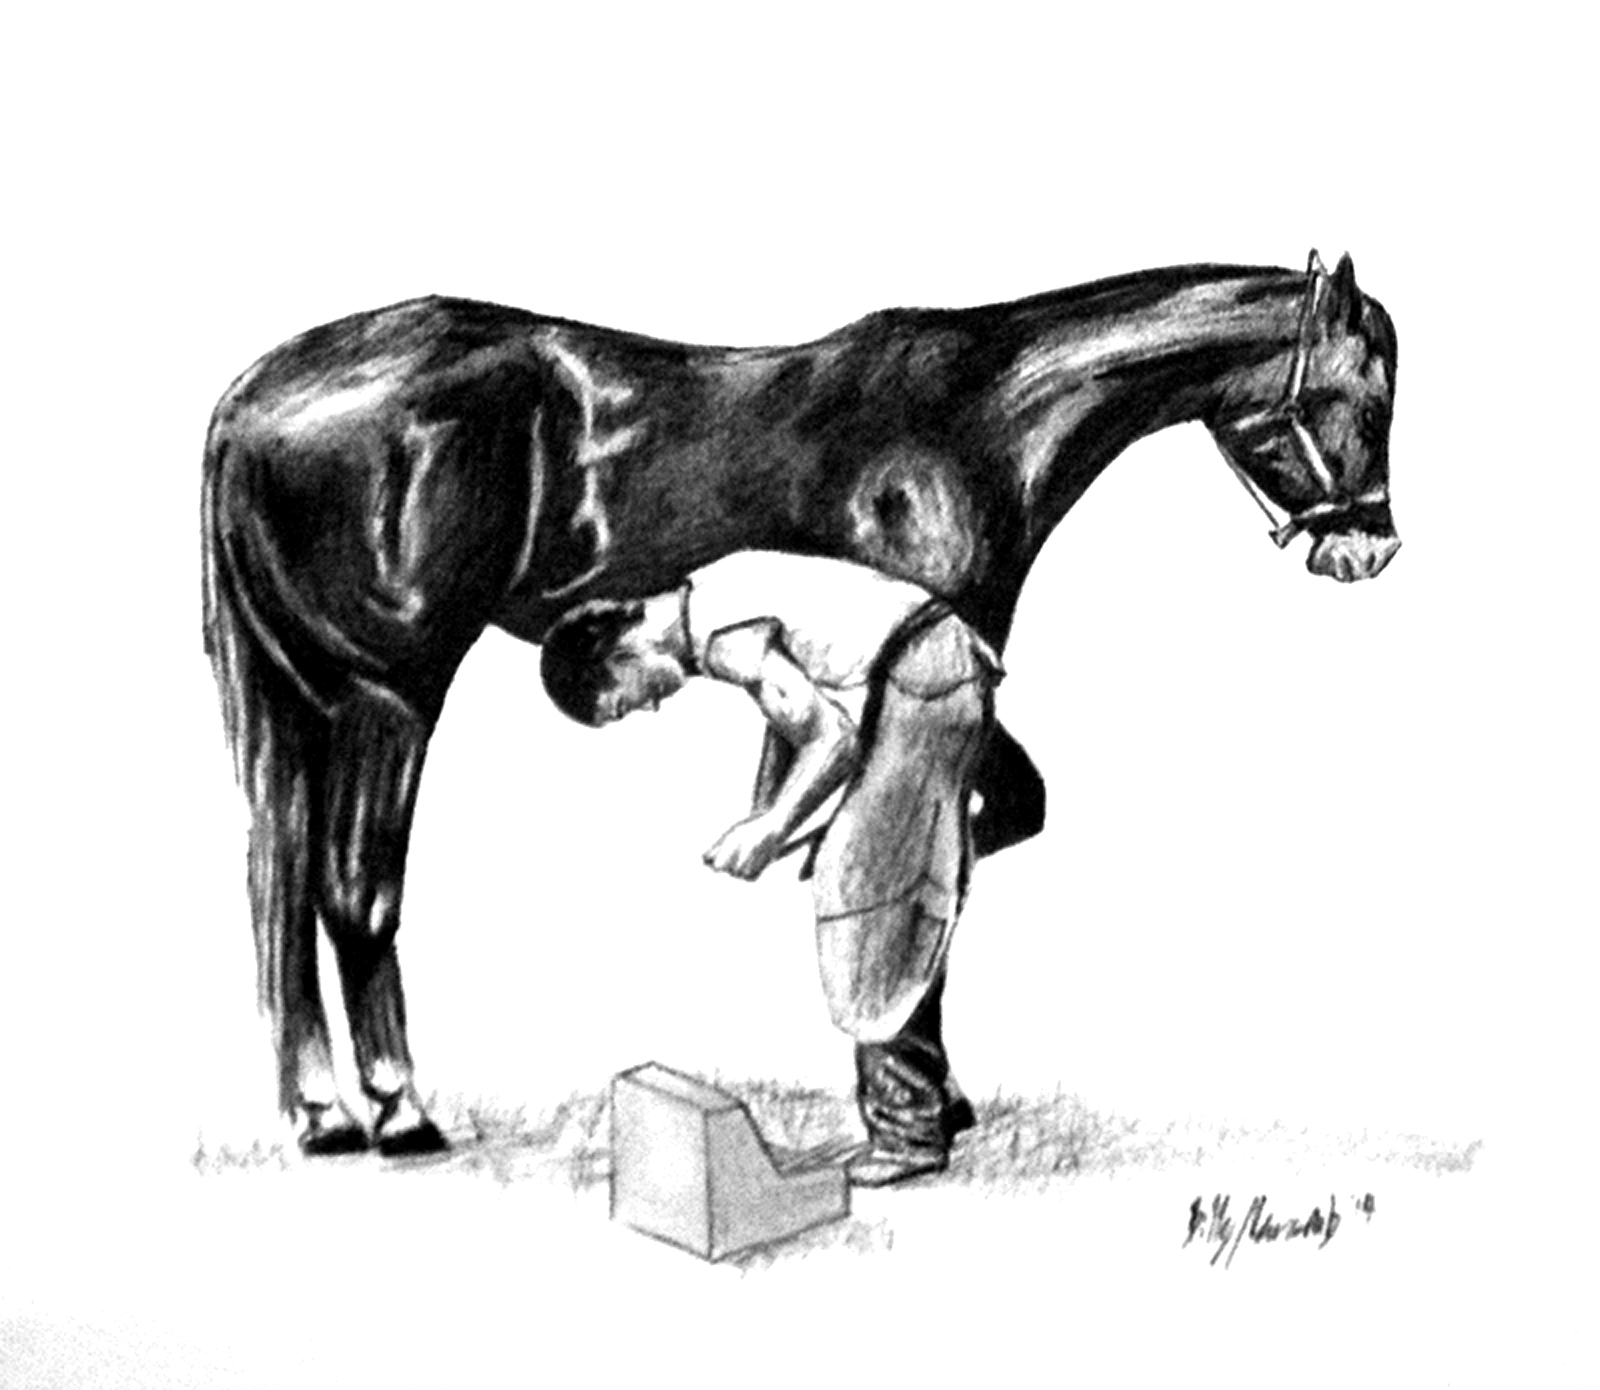 Man shoeing horse